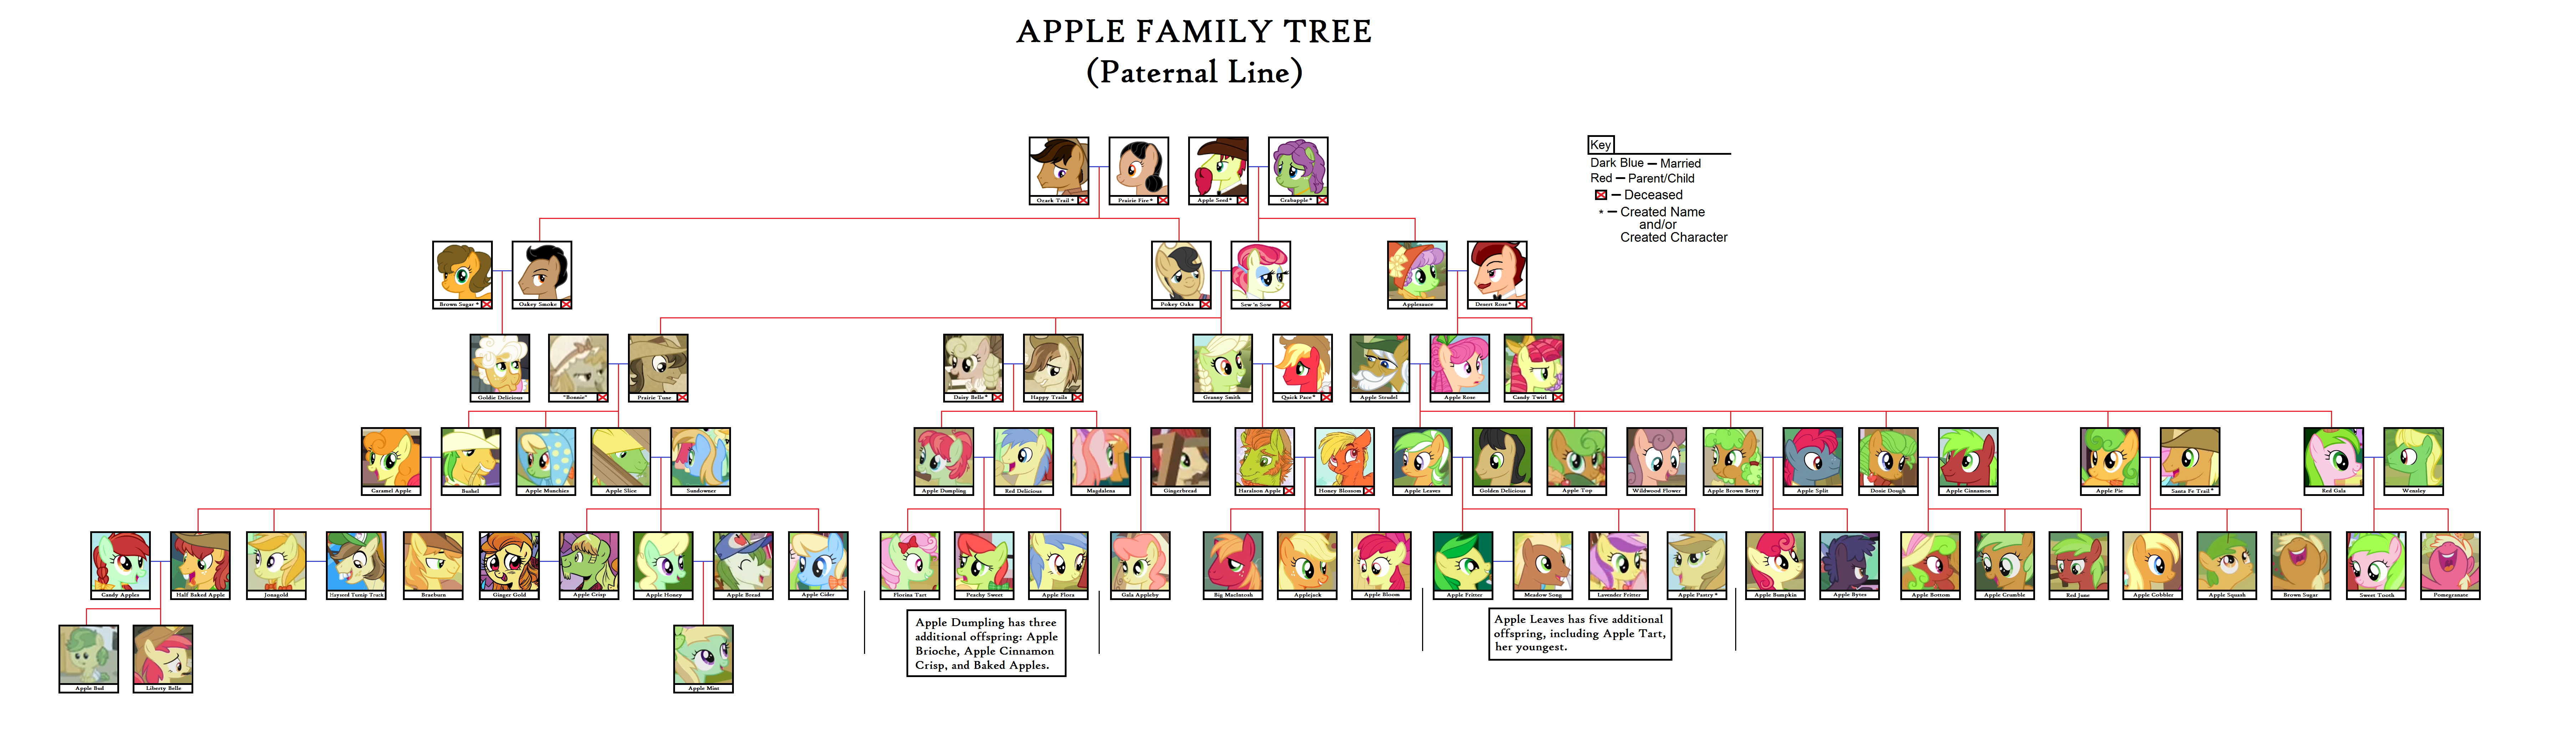 Applejack's Family Tree (Paternal Family) by UtopianPeace